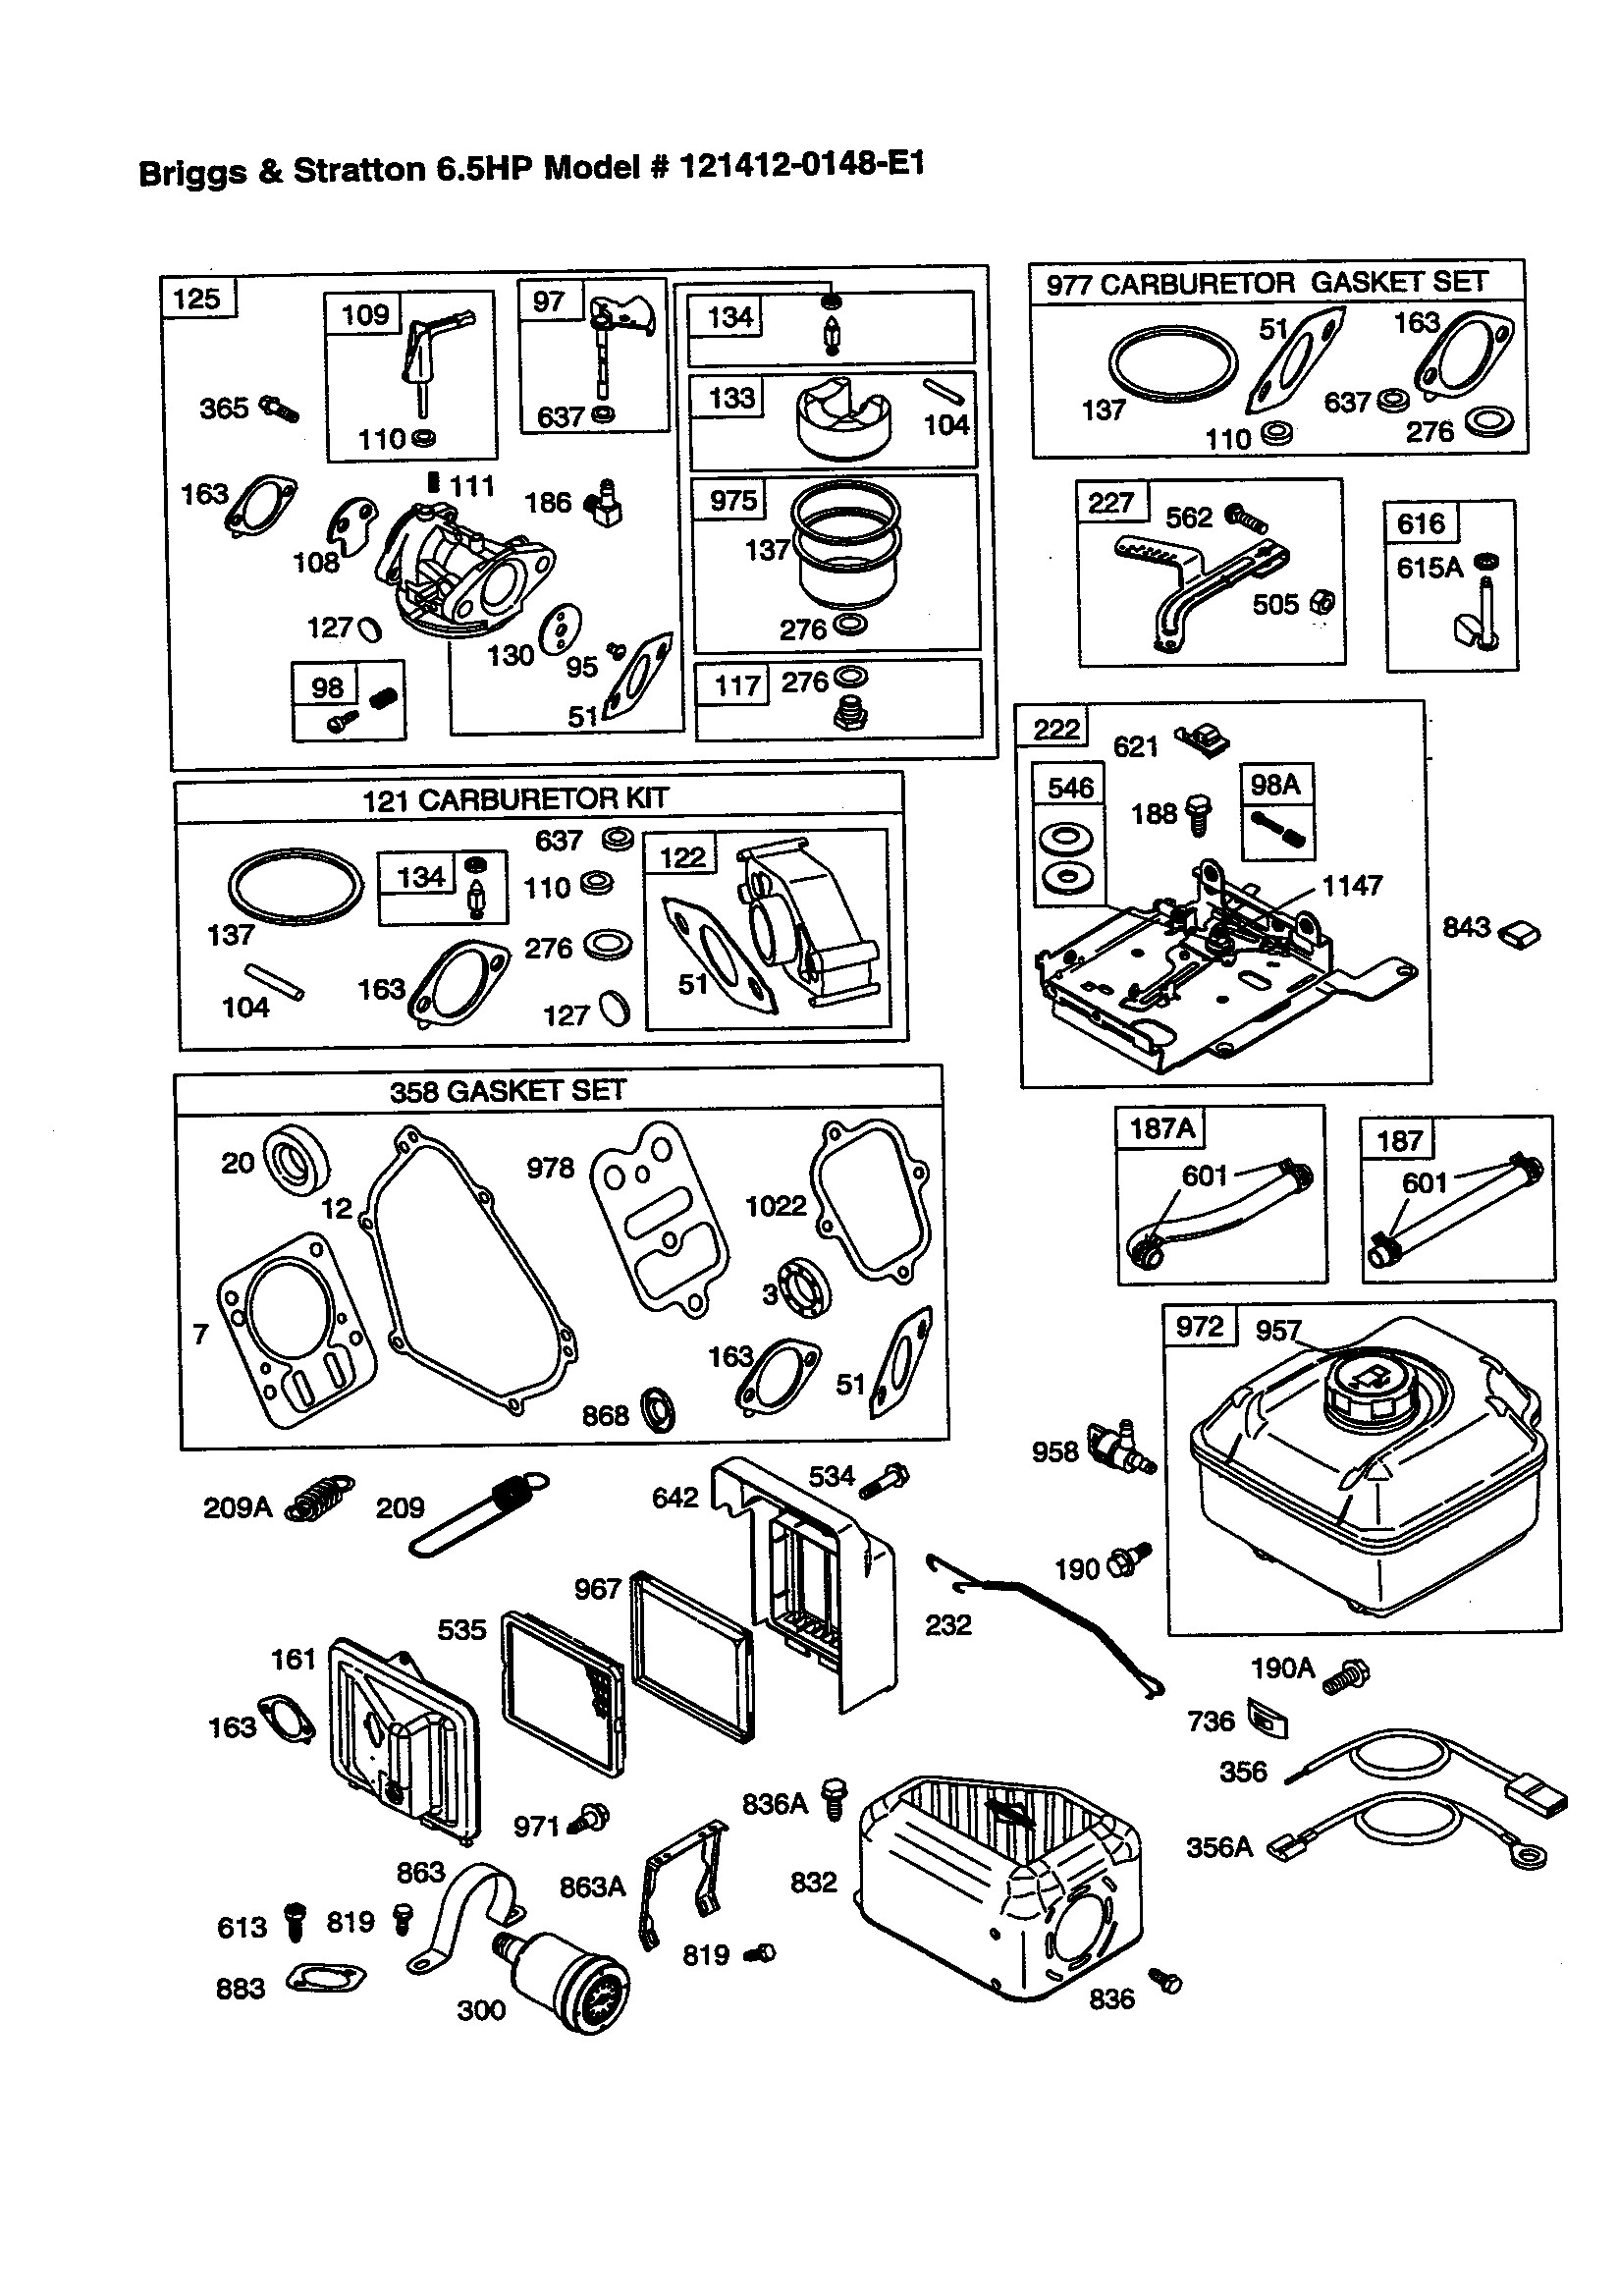 Briggs And Stratton Lawn Mower Engine Parts Diagram Murray 20 125cc Tractor Wiring Harness Fancy Vignette